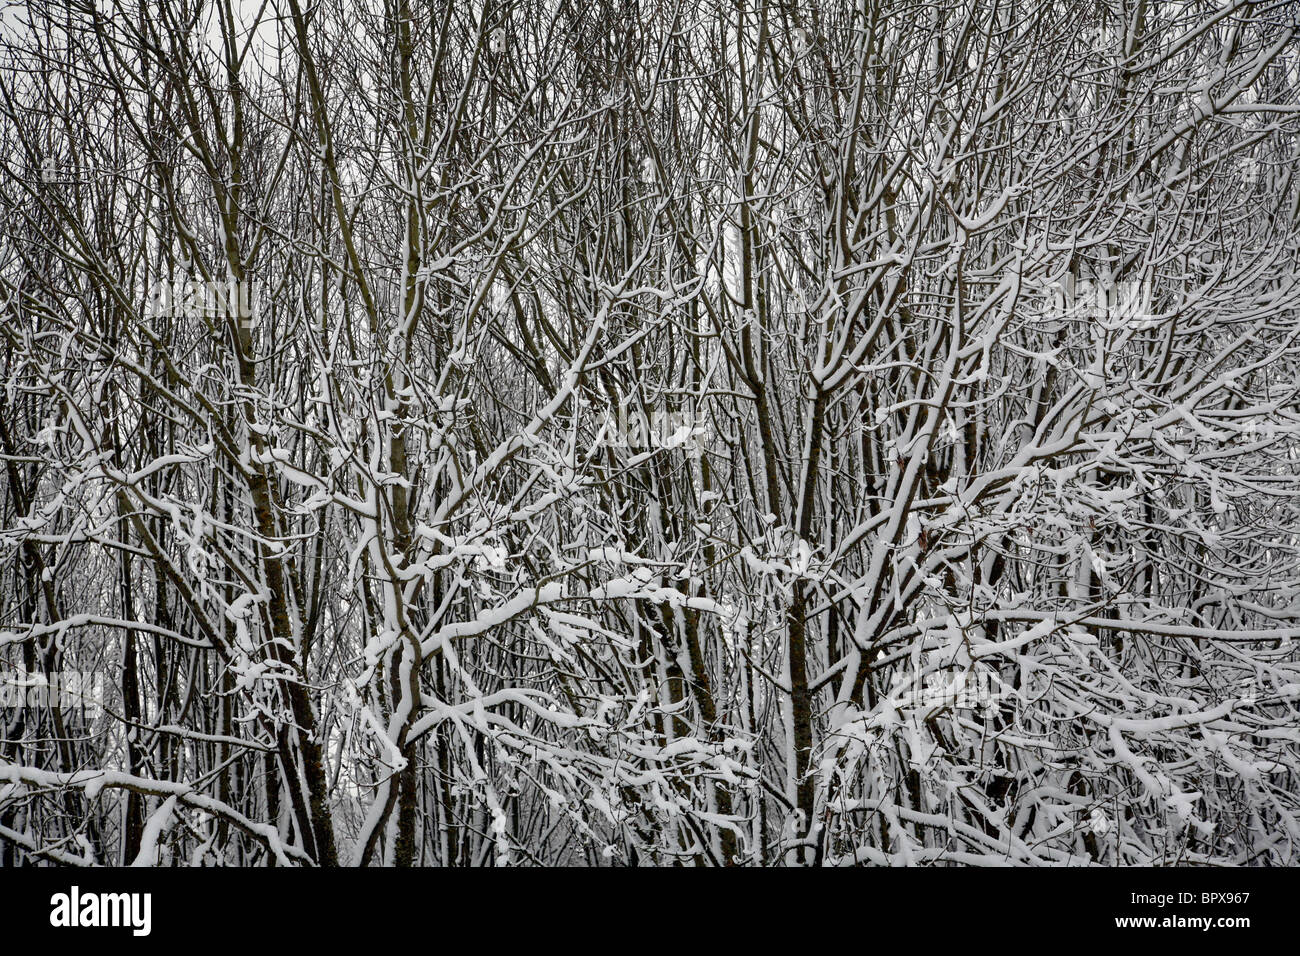 Frost covered foliage at Coate Water in Swindon. - Stock Image